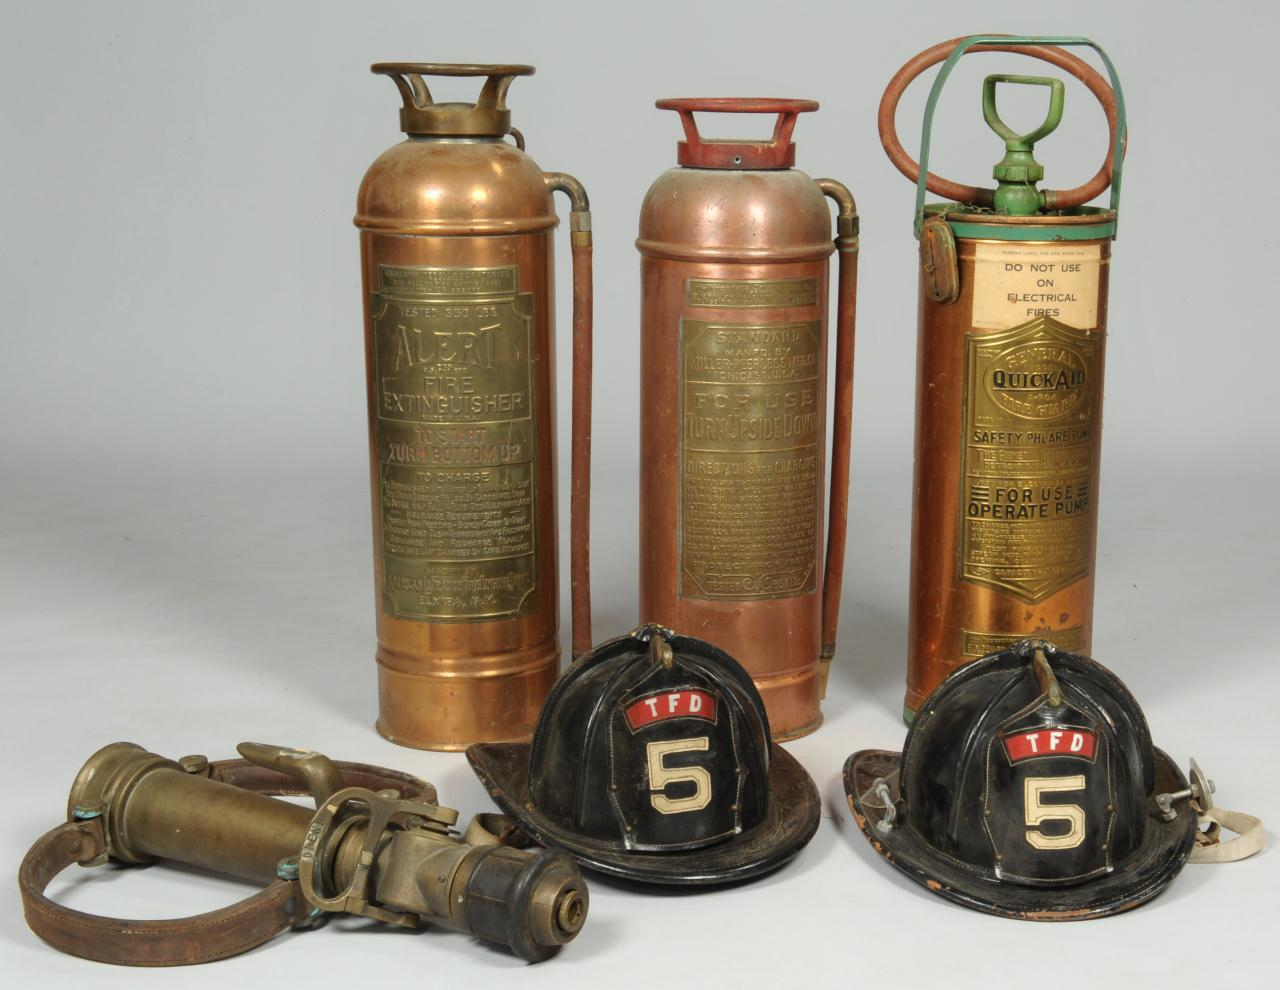 Lot 613: 2 Firemen Helmets, Nozzle, & 3 Fire Extinguishers